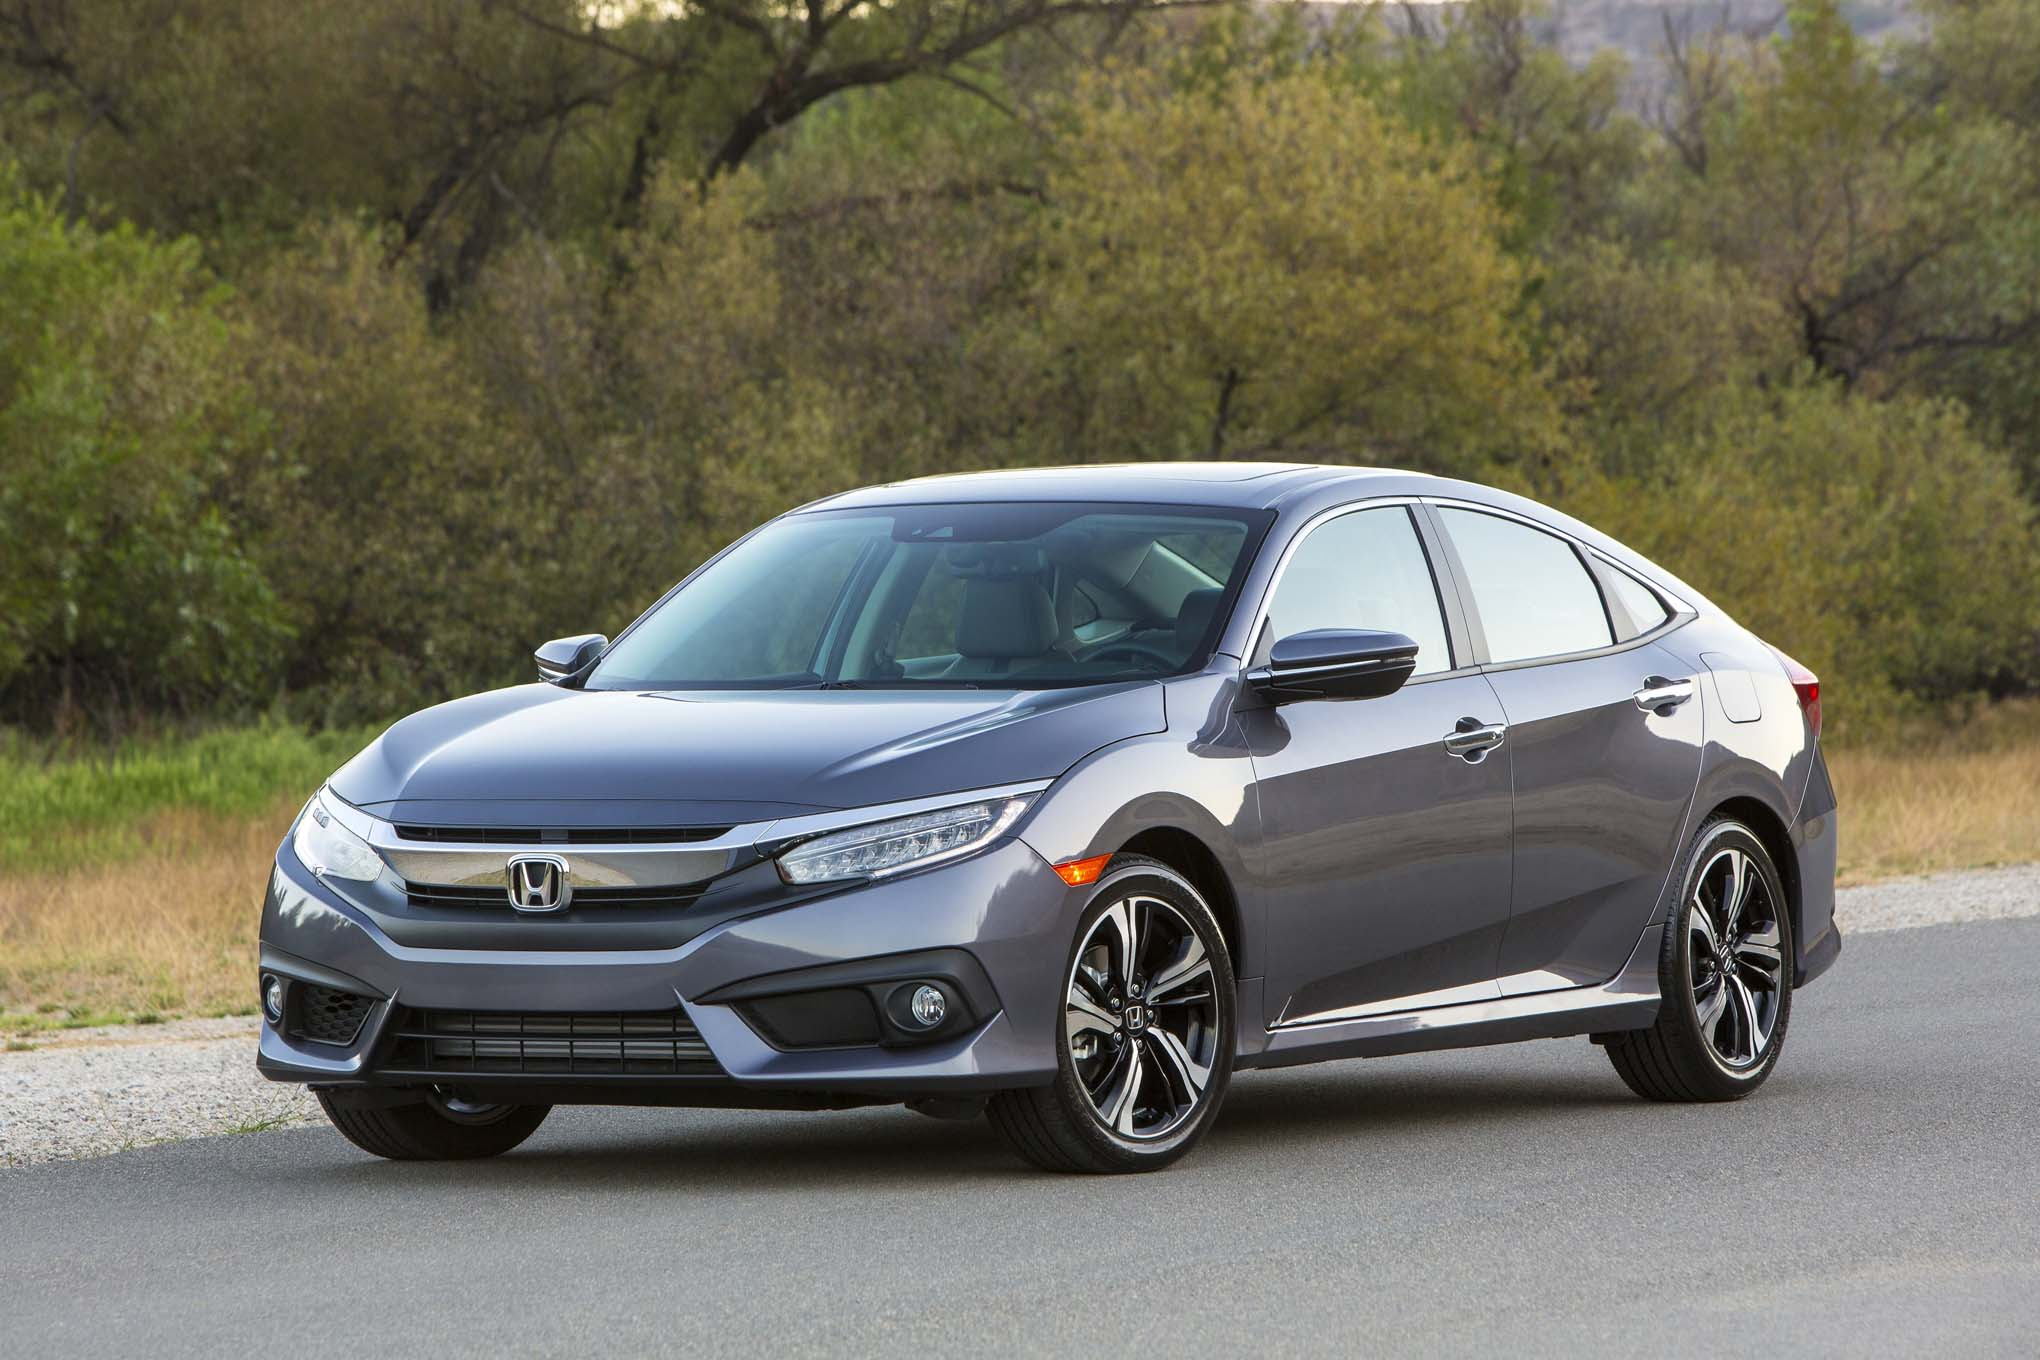 2017 Honda Civic sedan front three quarter